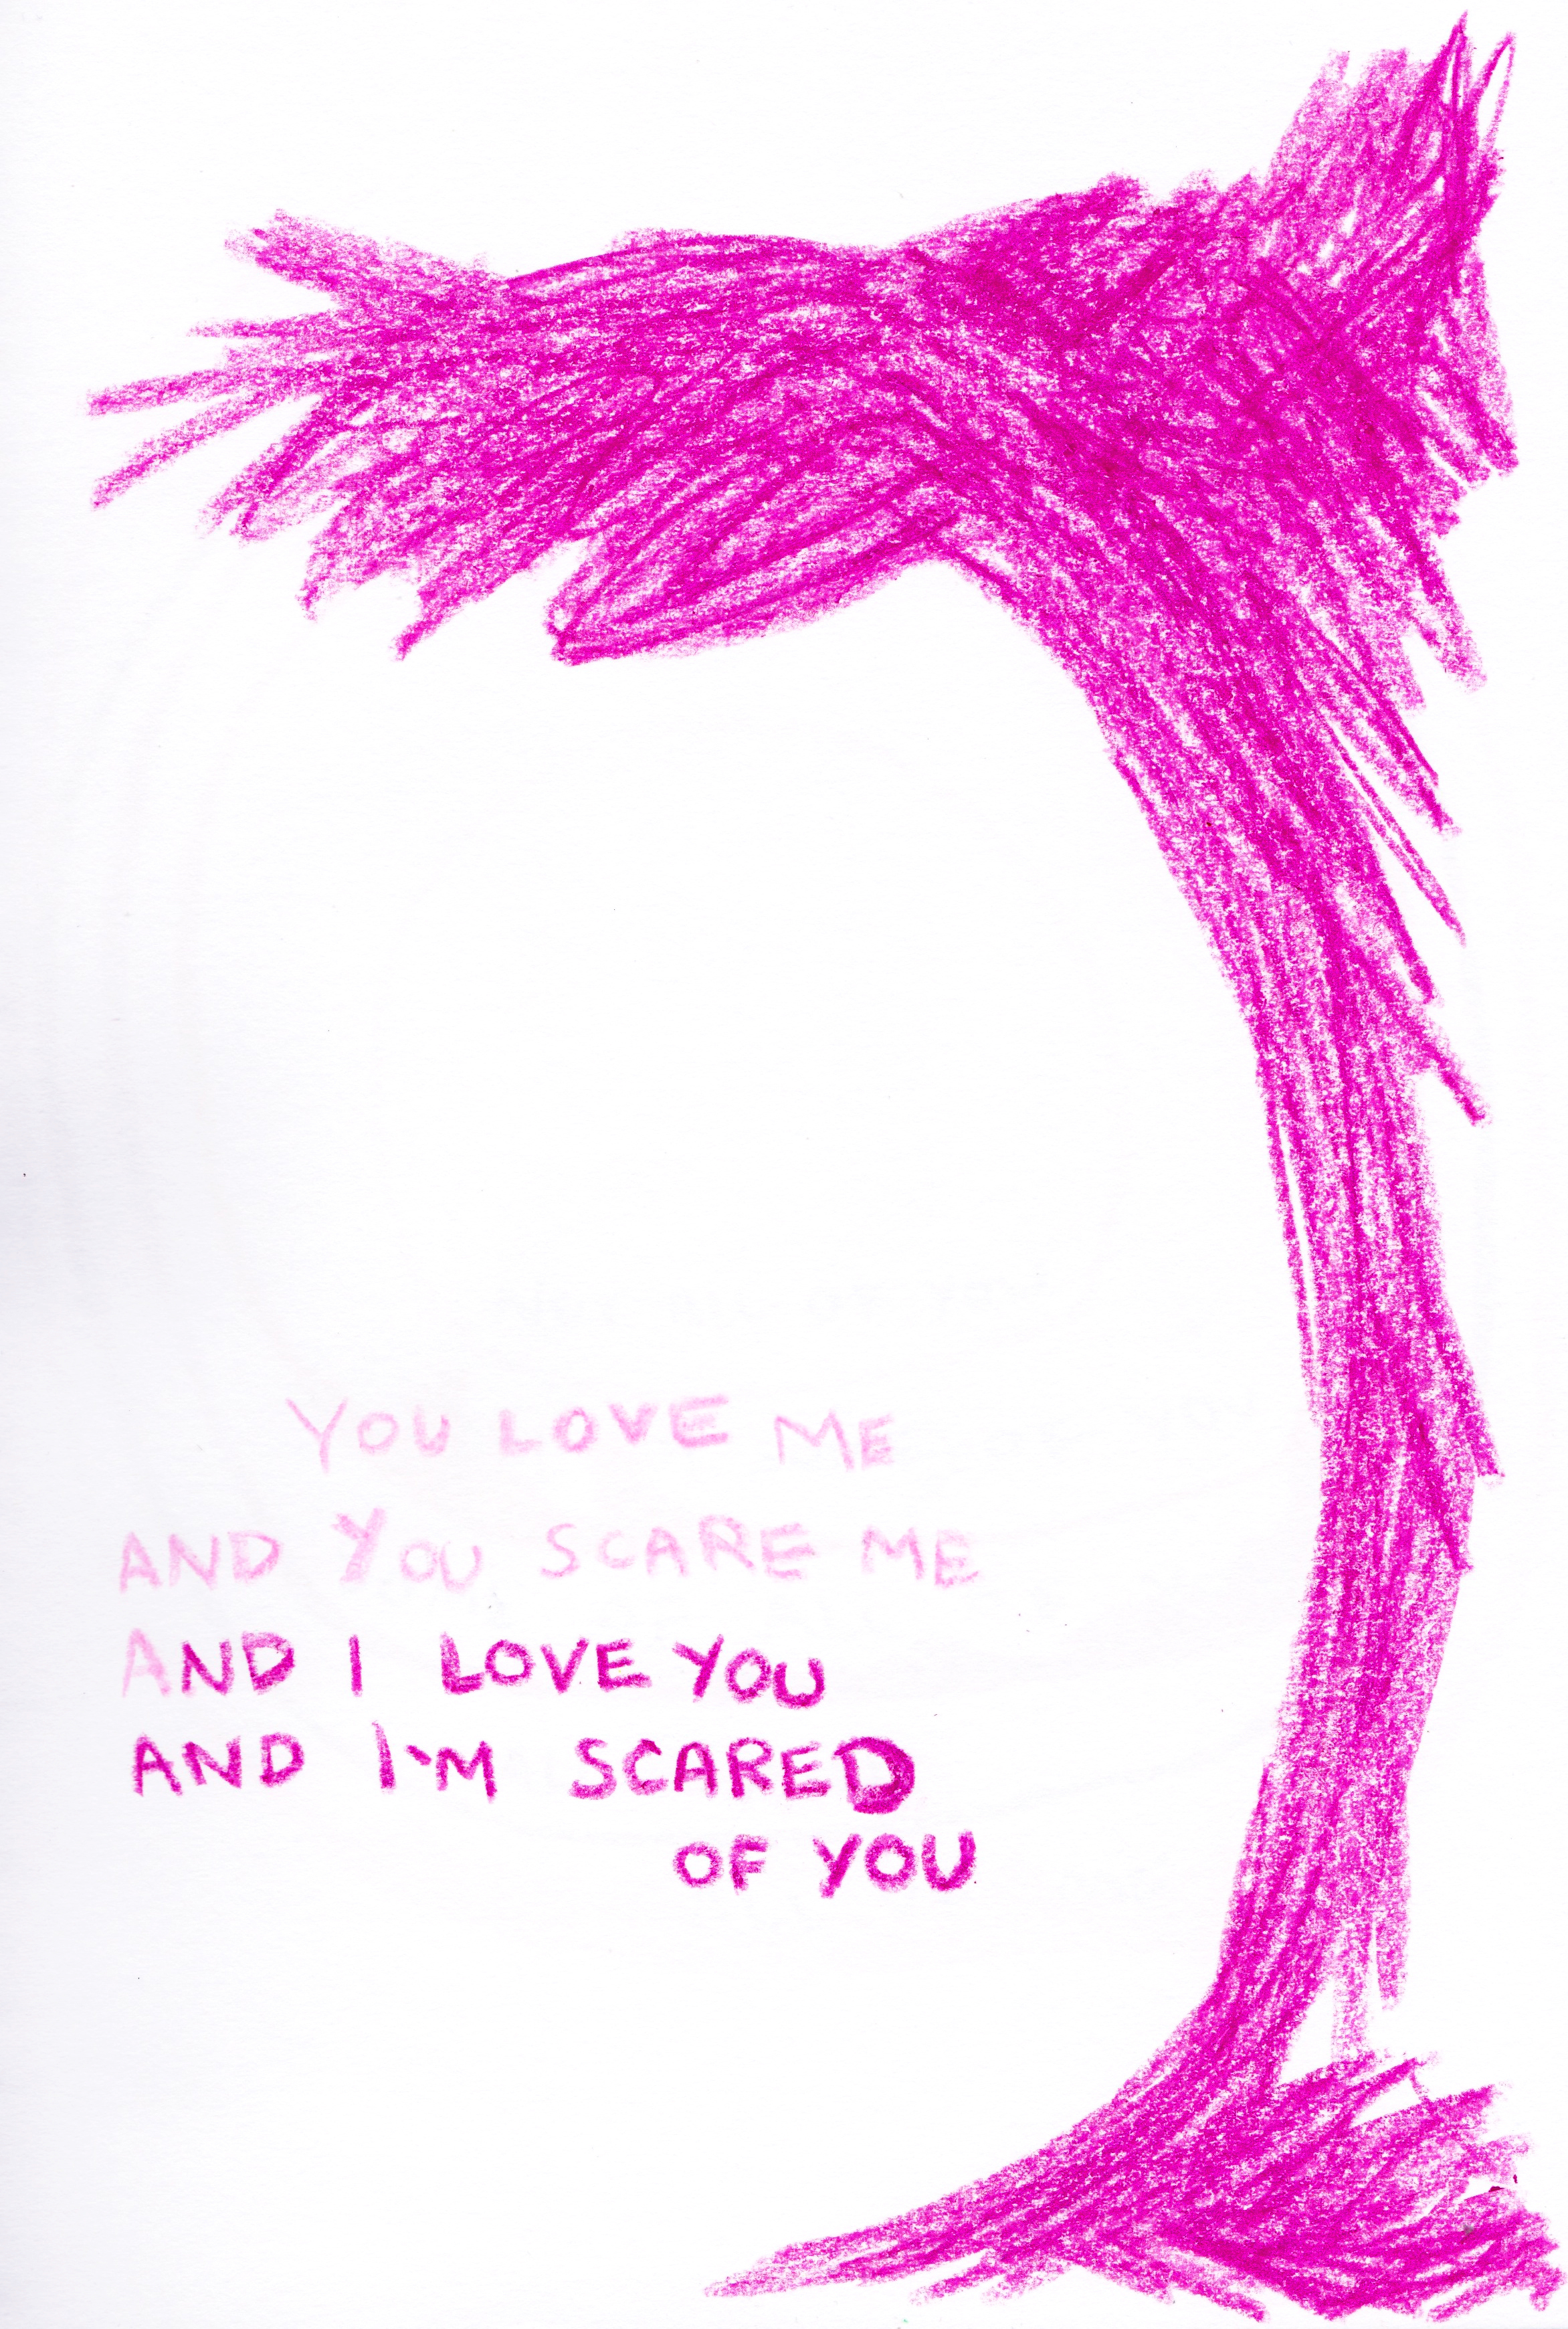 Love Scare. Crayon drawing on paper.